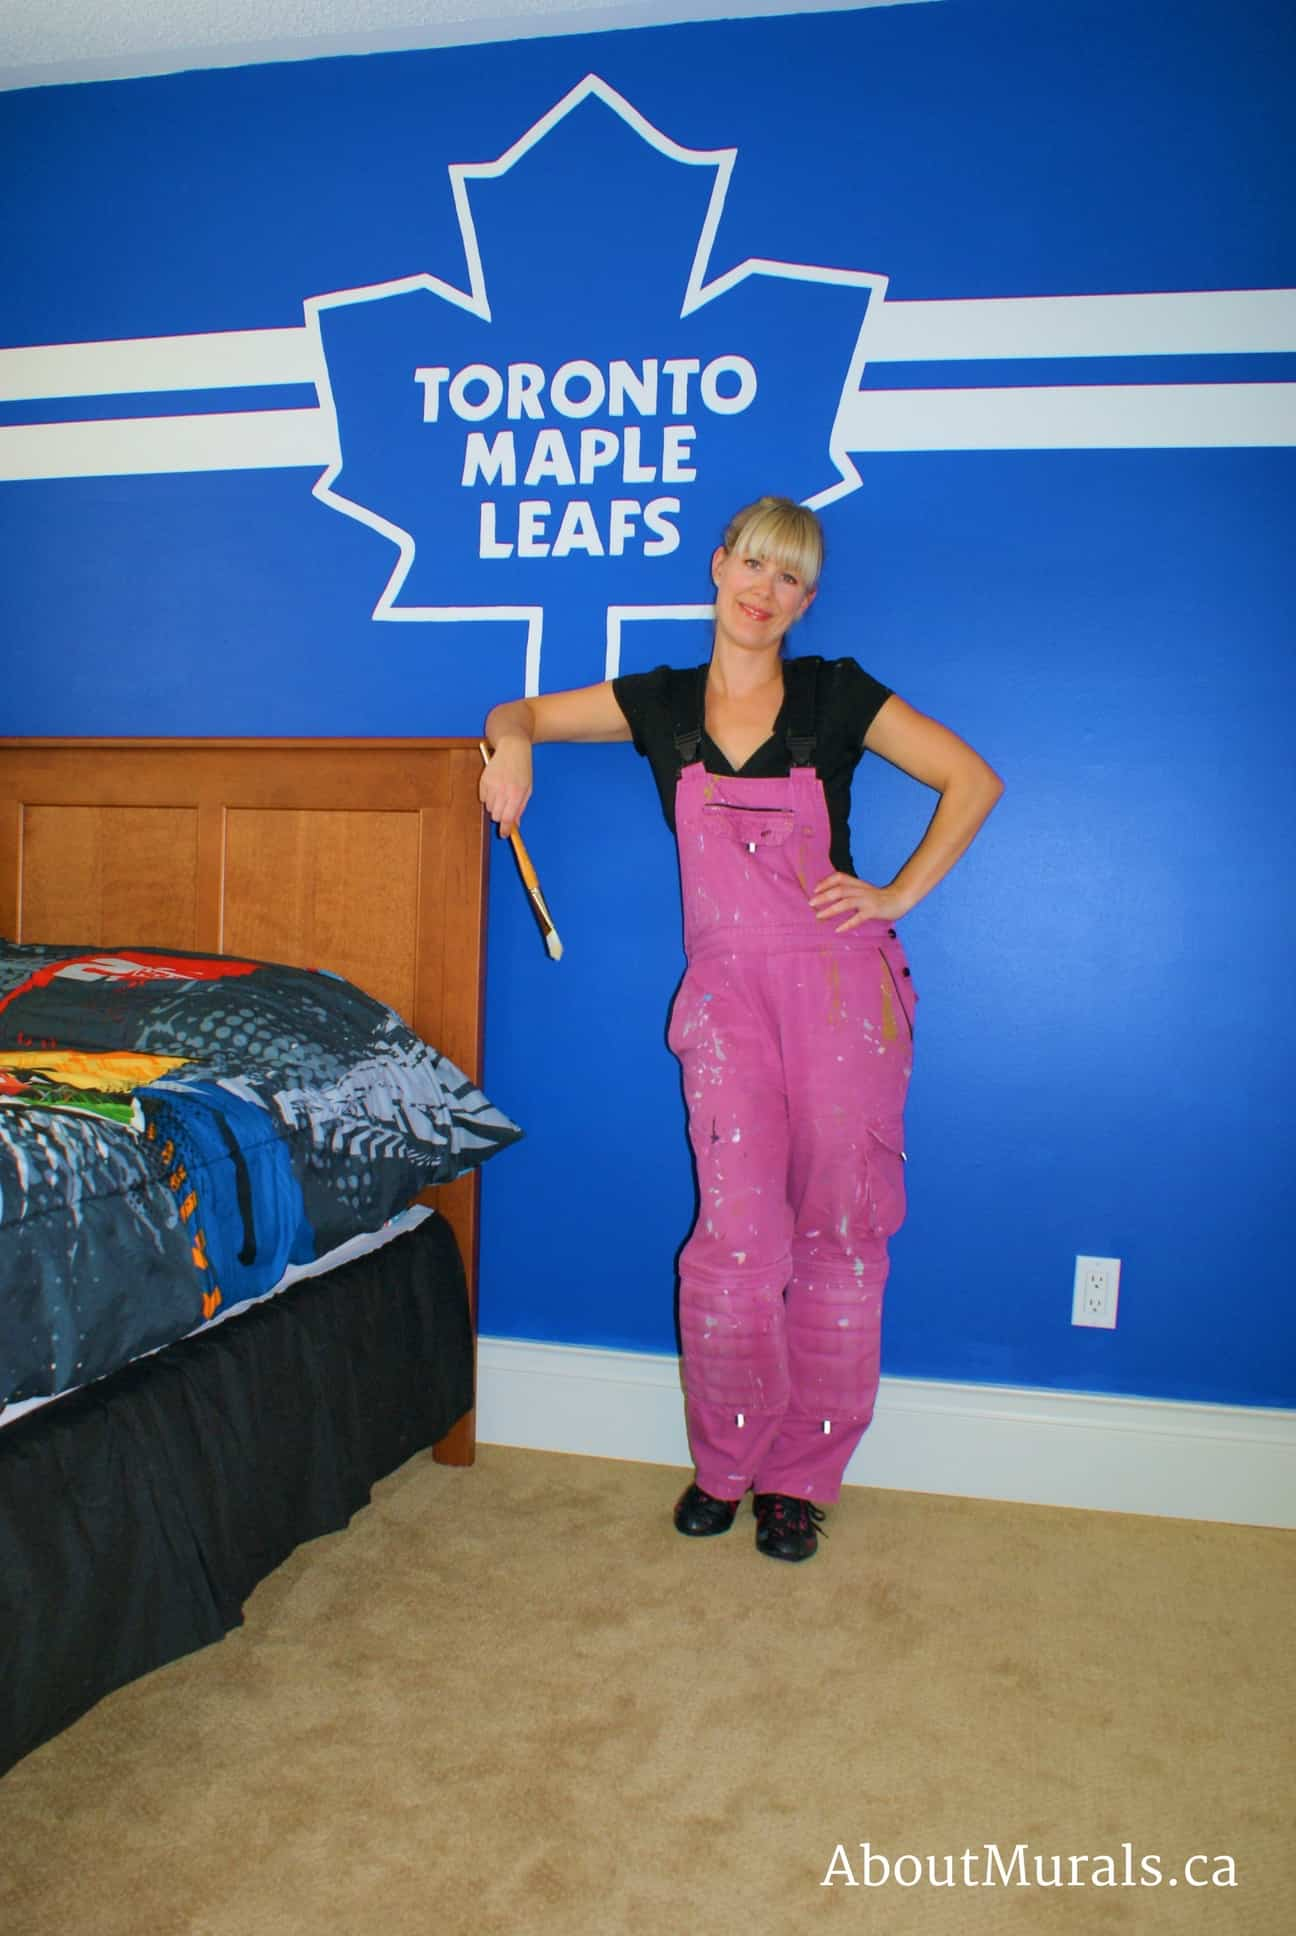 Mural painter Adrienne Scanlan stands next to a Toronto Maple Leafs logo she painted